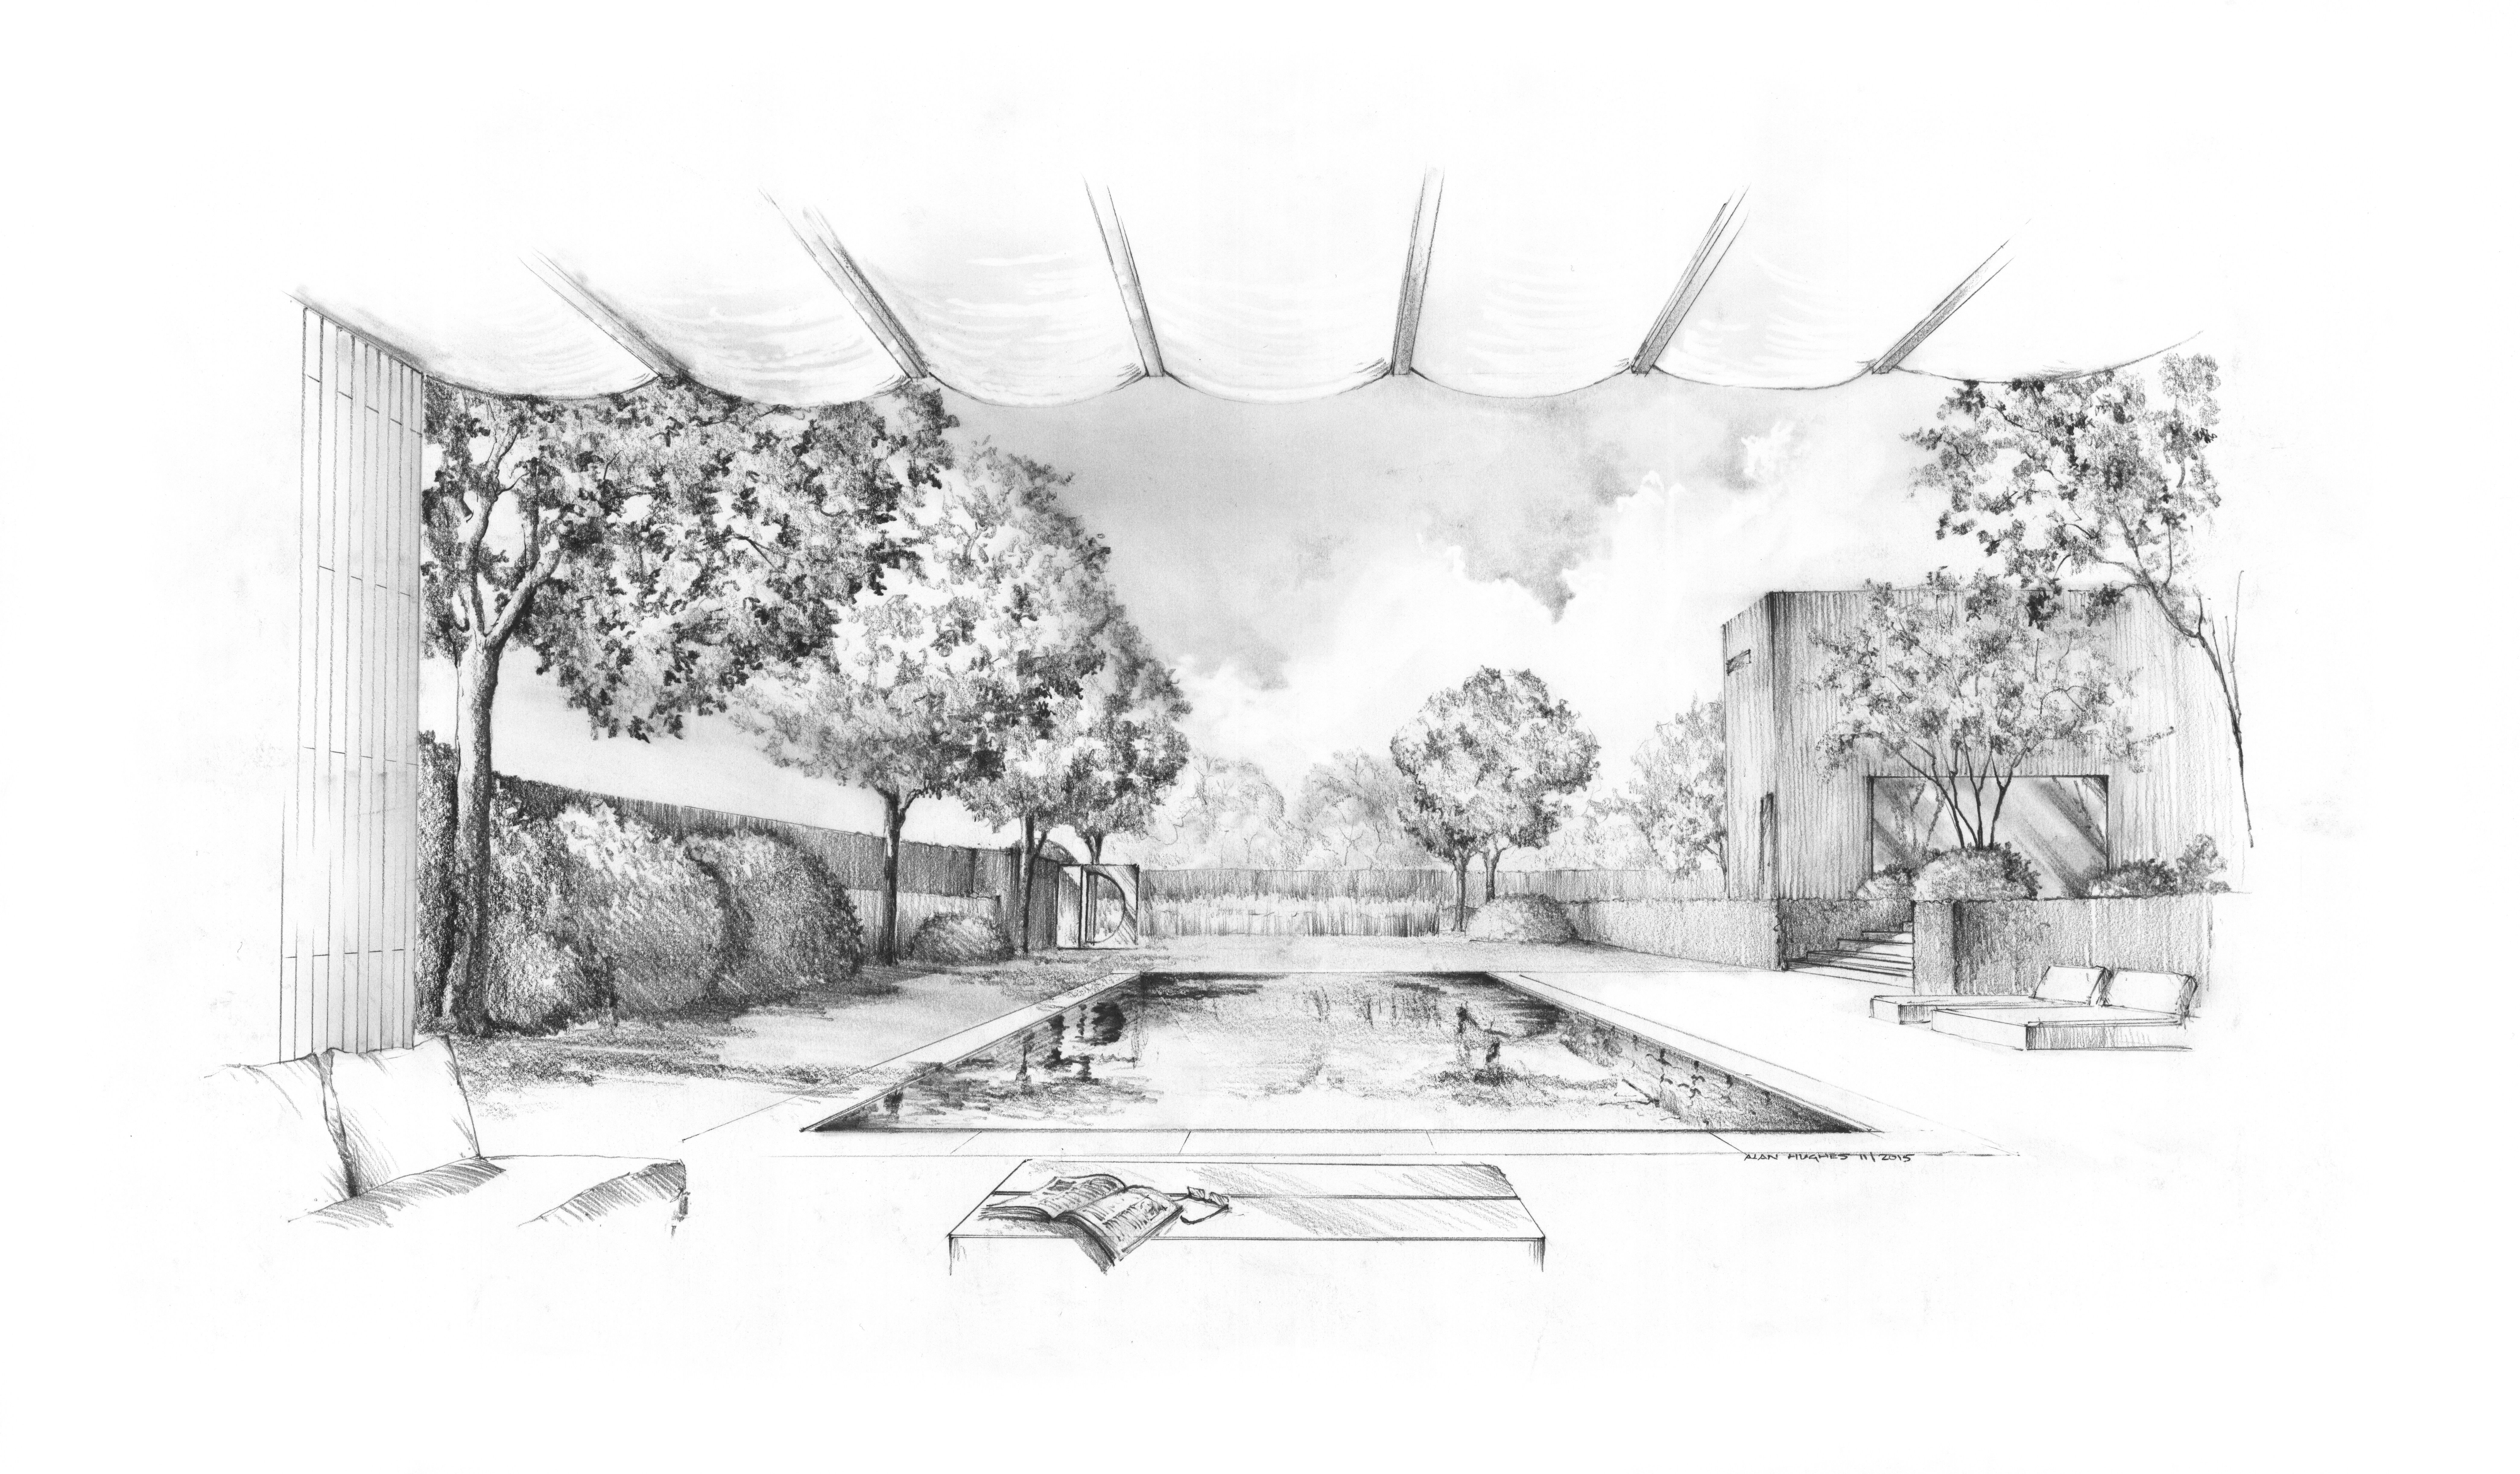 Long island garden pool view from under the awning pencil drawing alan hughes